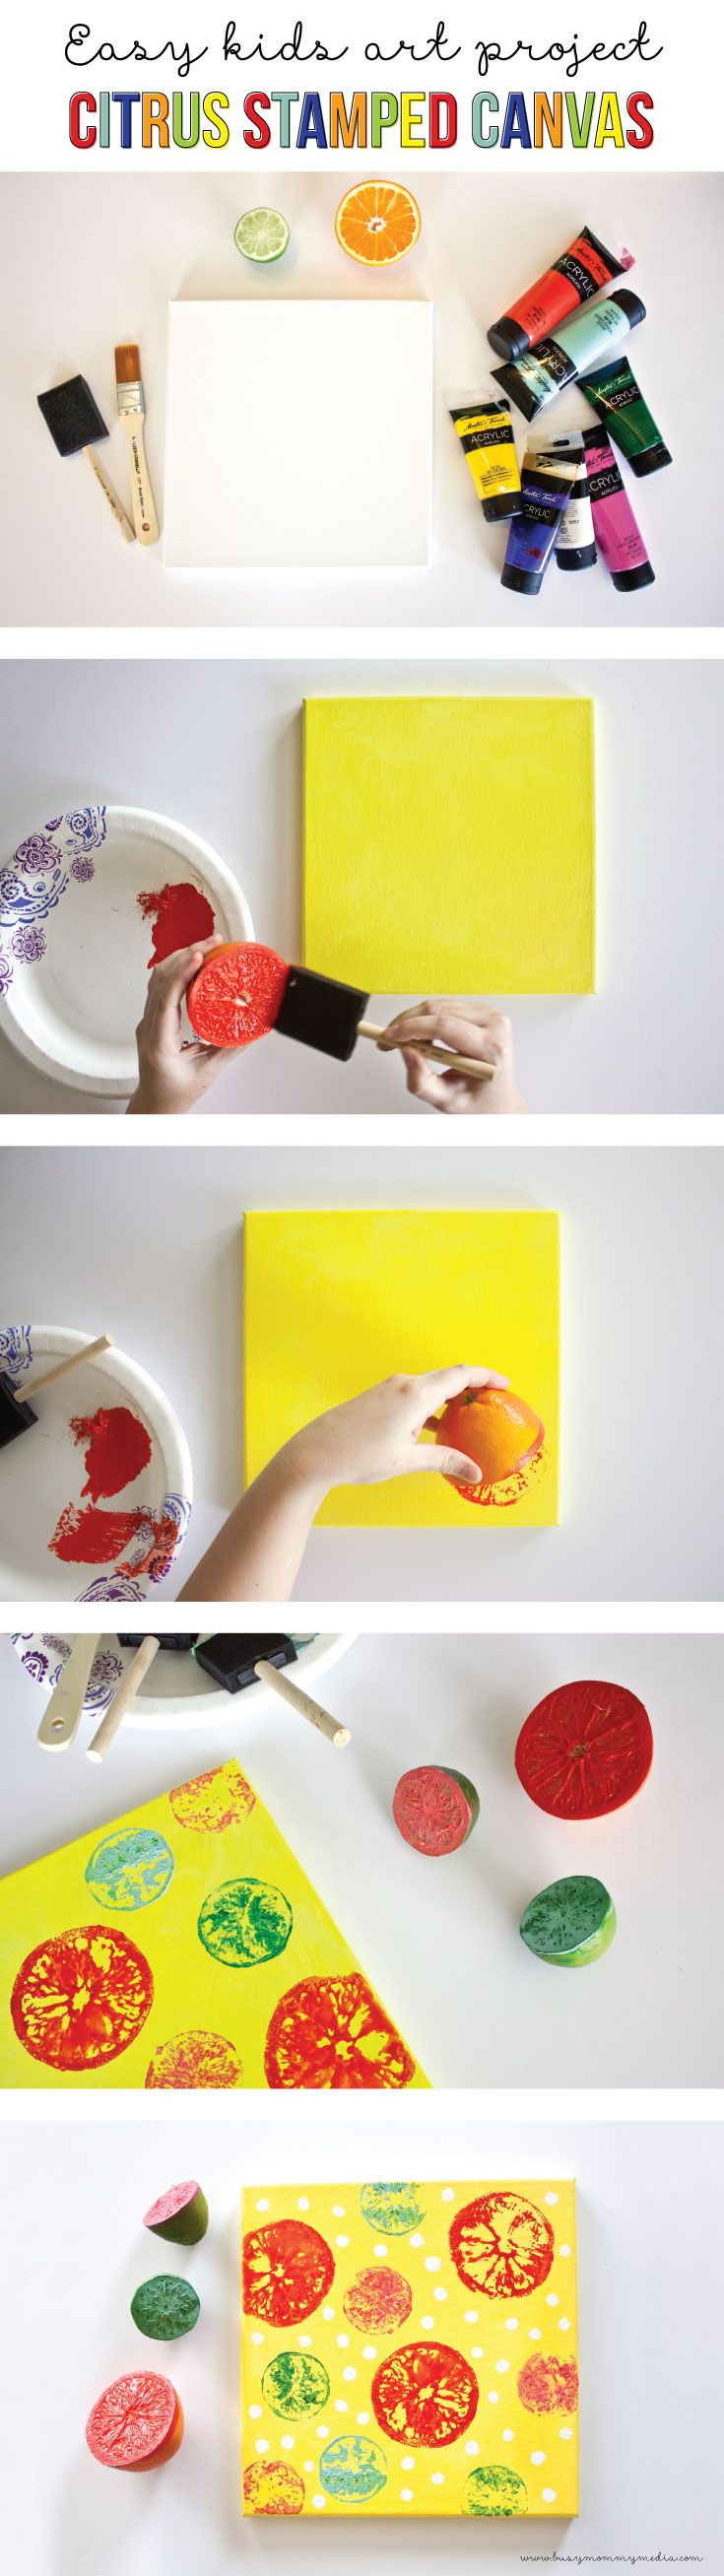 This Citrus Stamped Canvas Is Such A Fun Art Project For Kids And Great Way